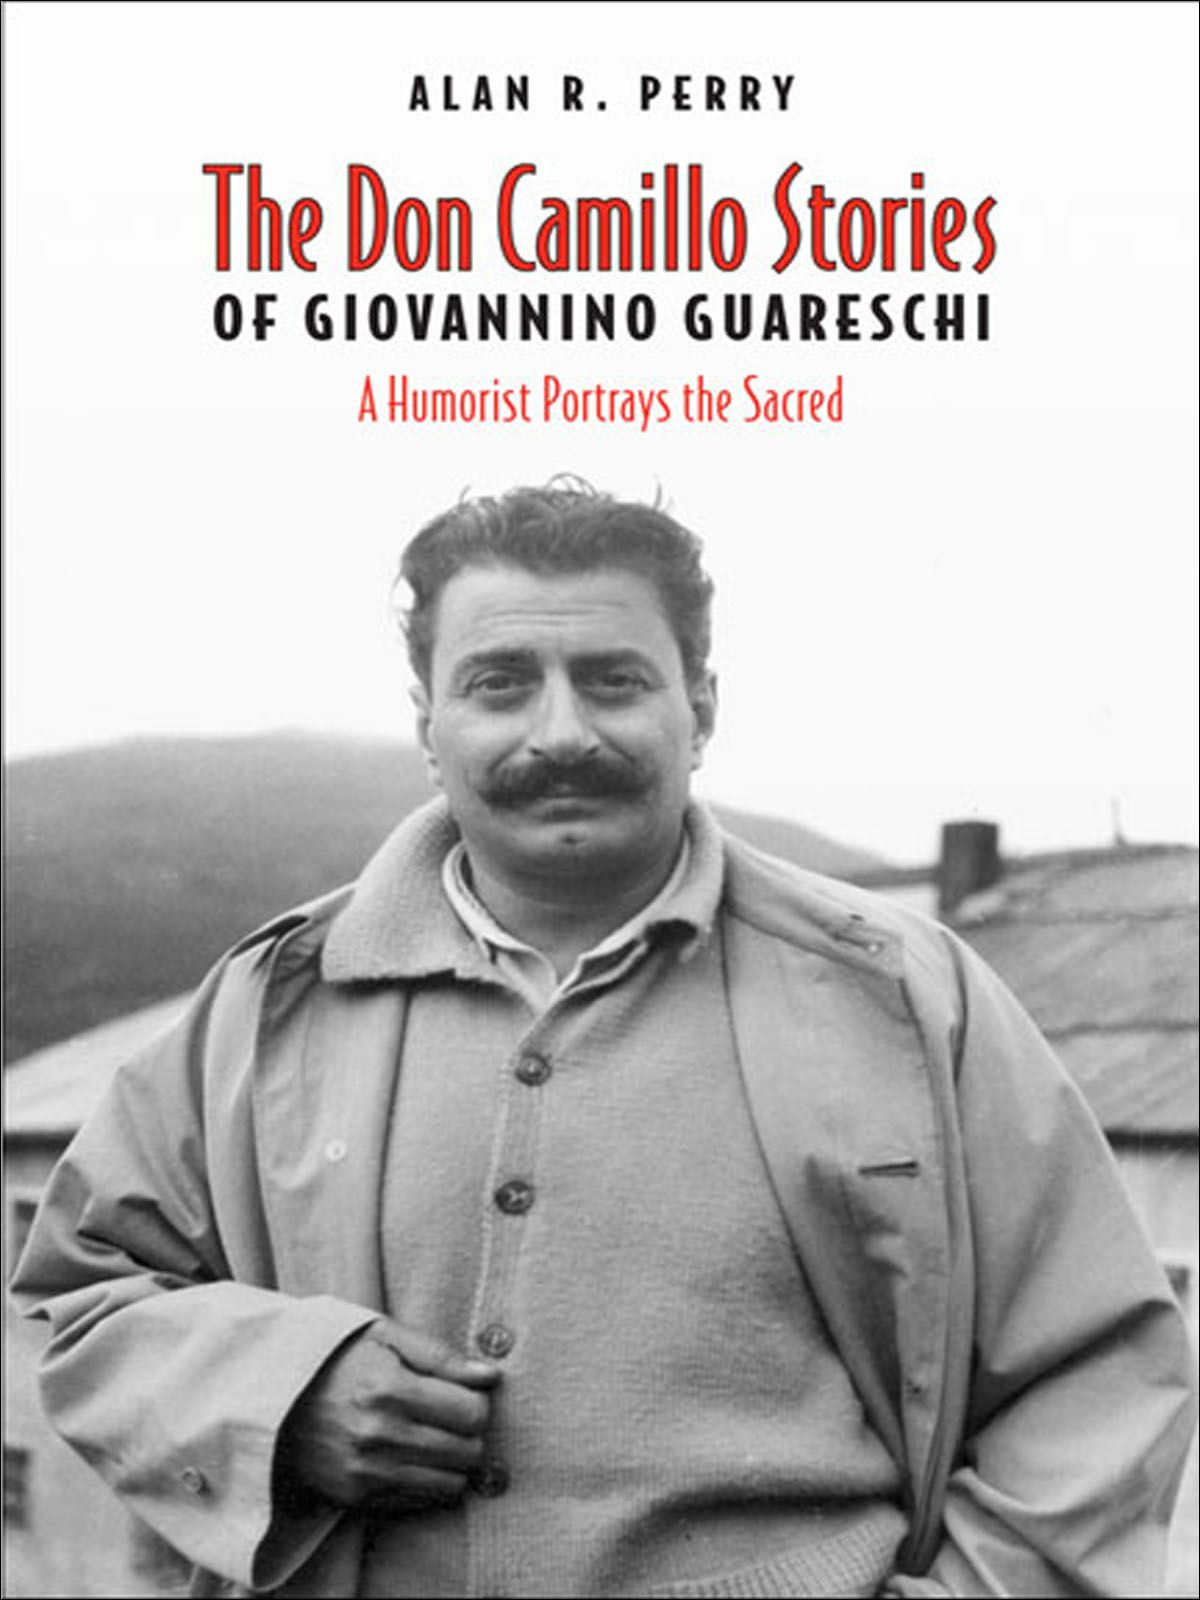 Don Camillo Stories of Giovannino Guareschi